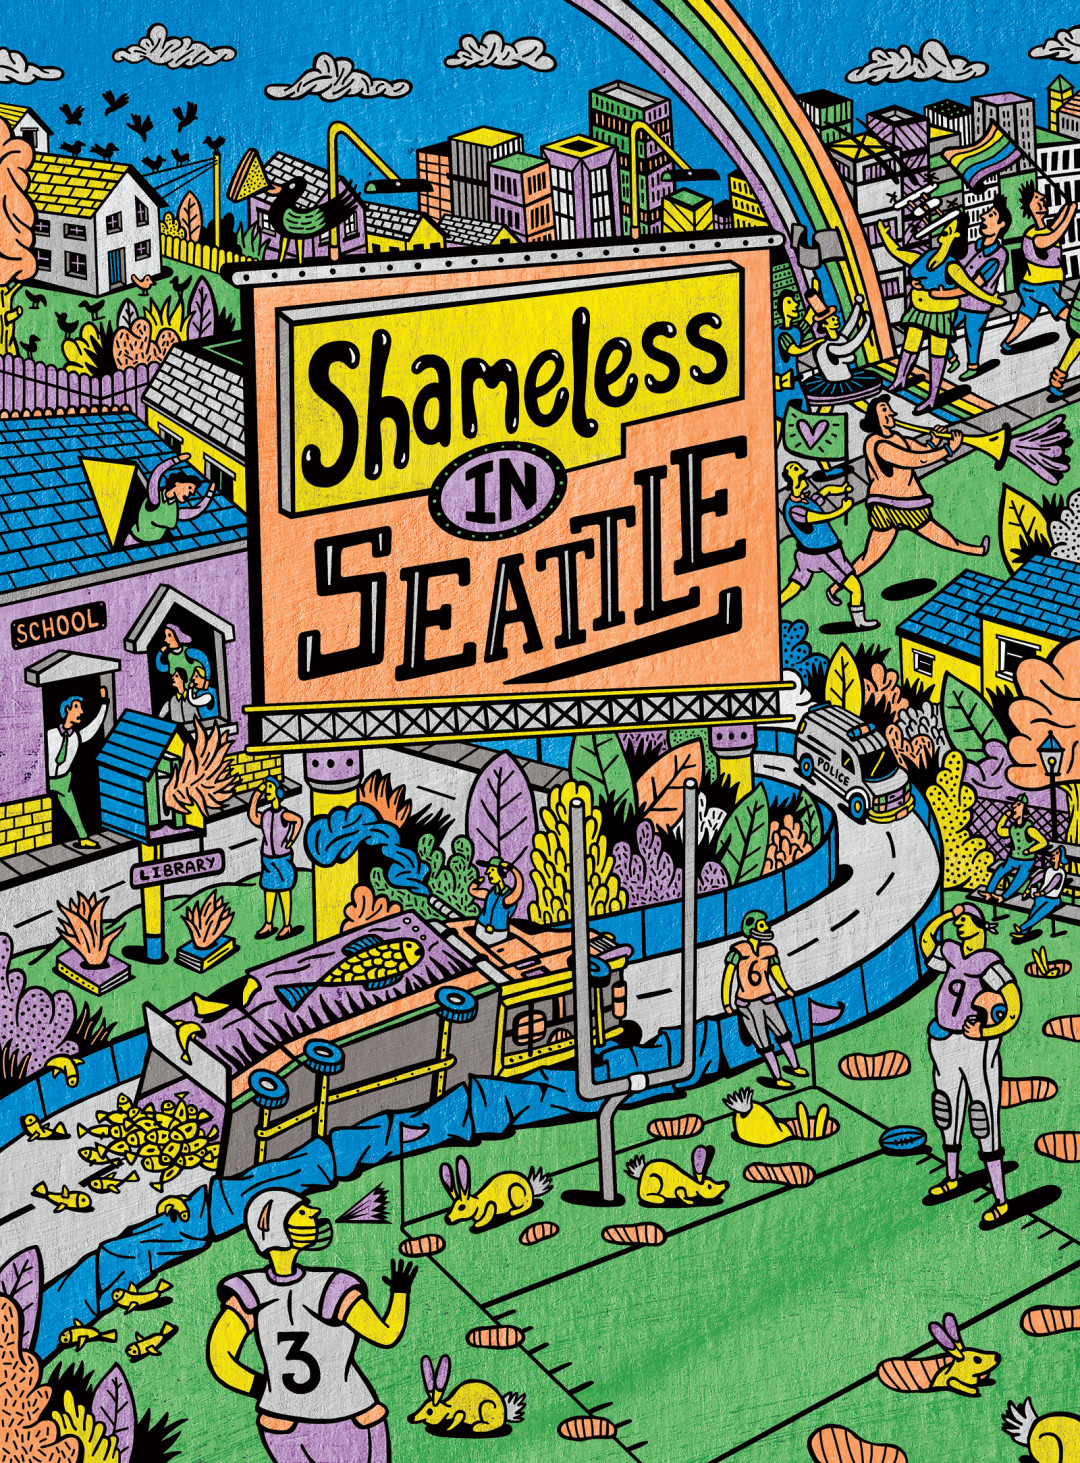 Shameless in seatlle artwork ql6opm